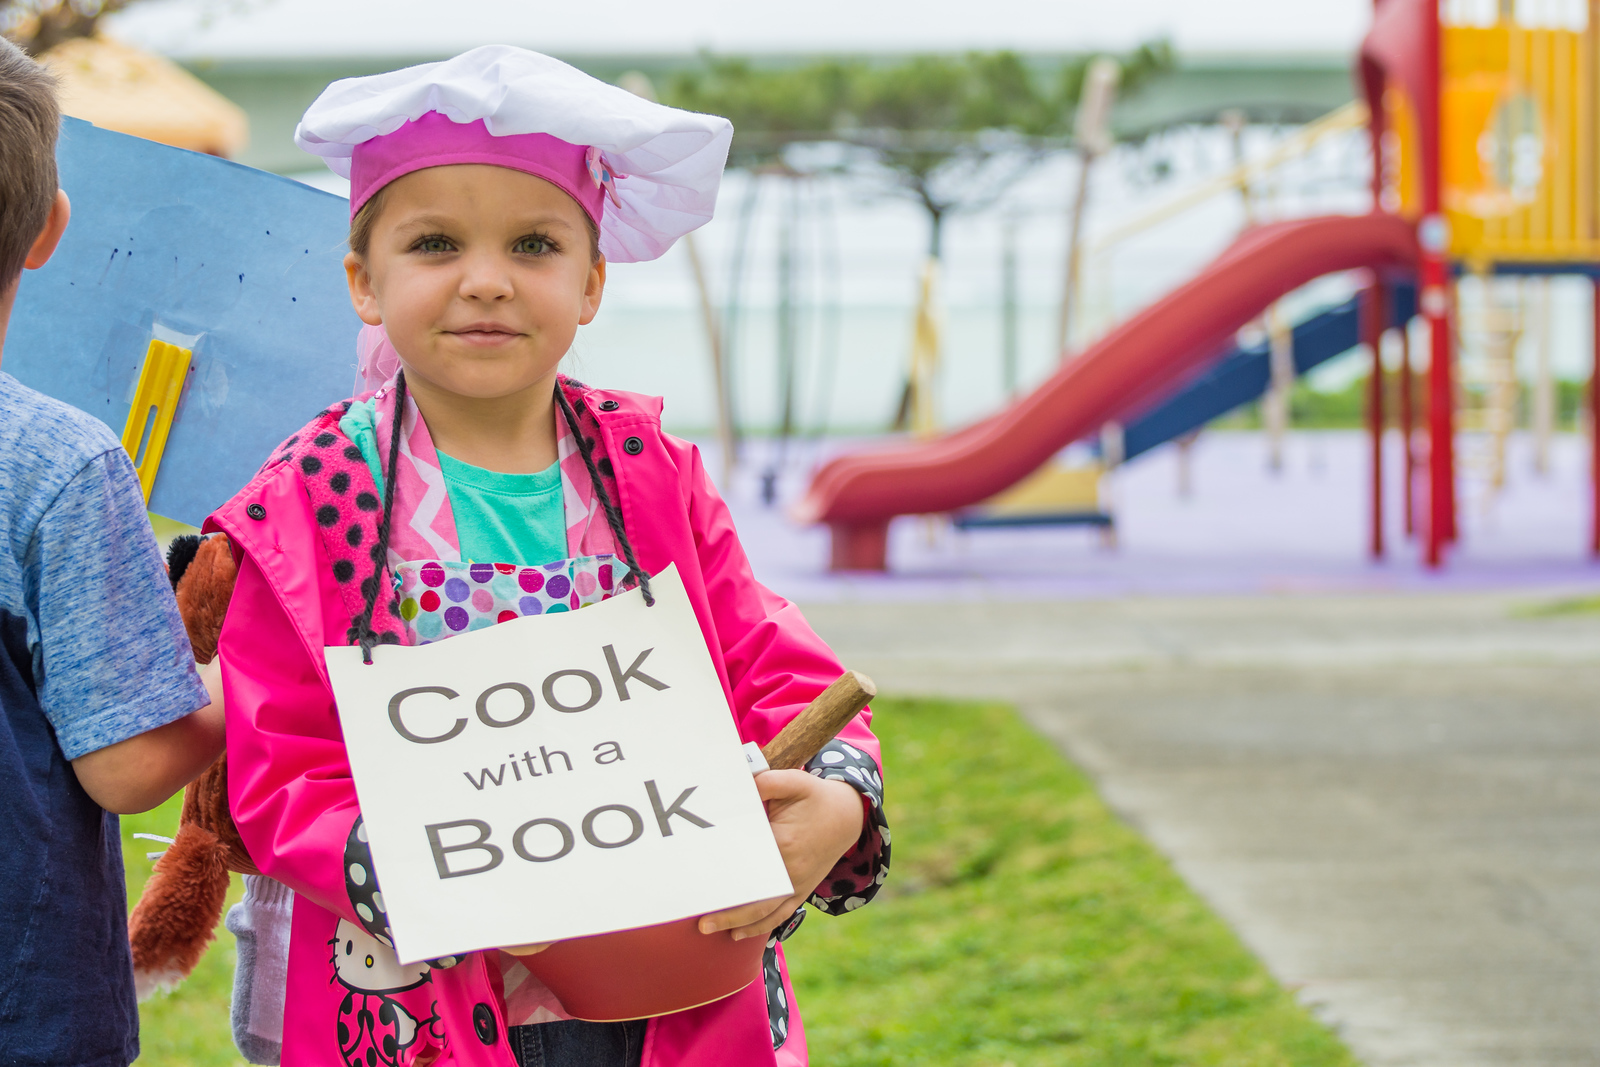 A Cook with a Book